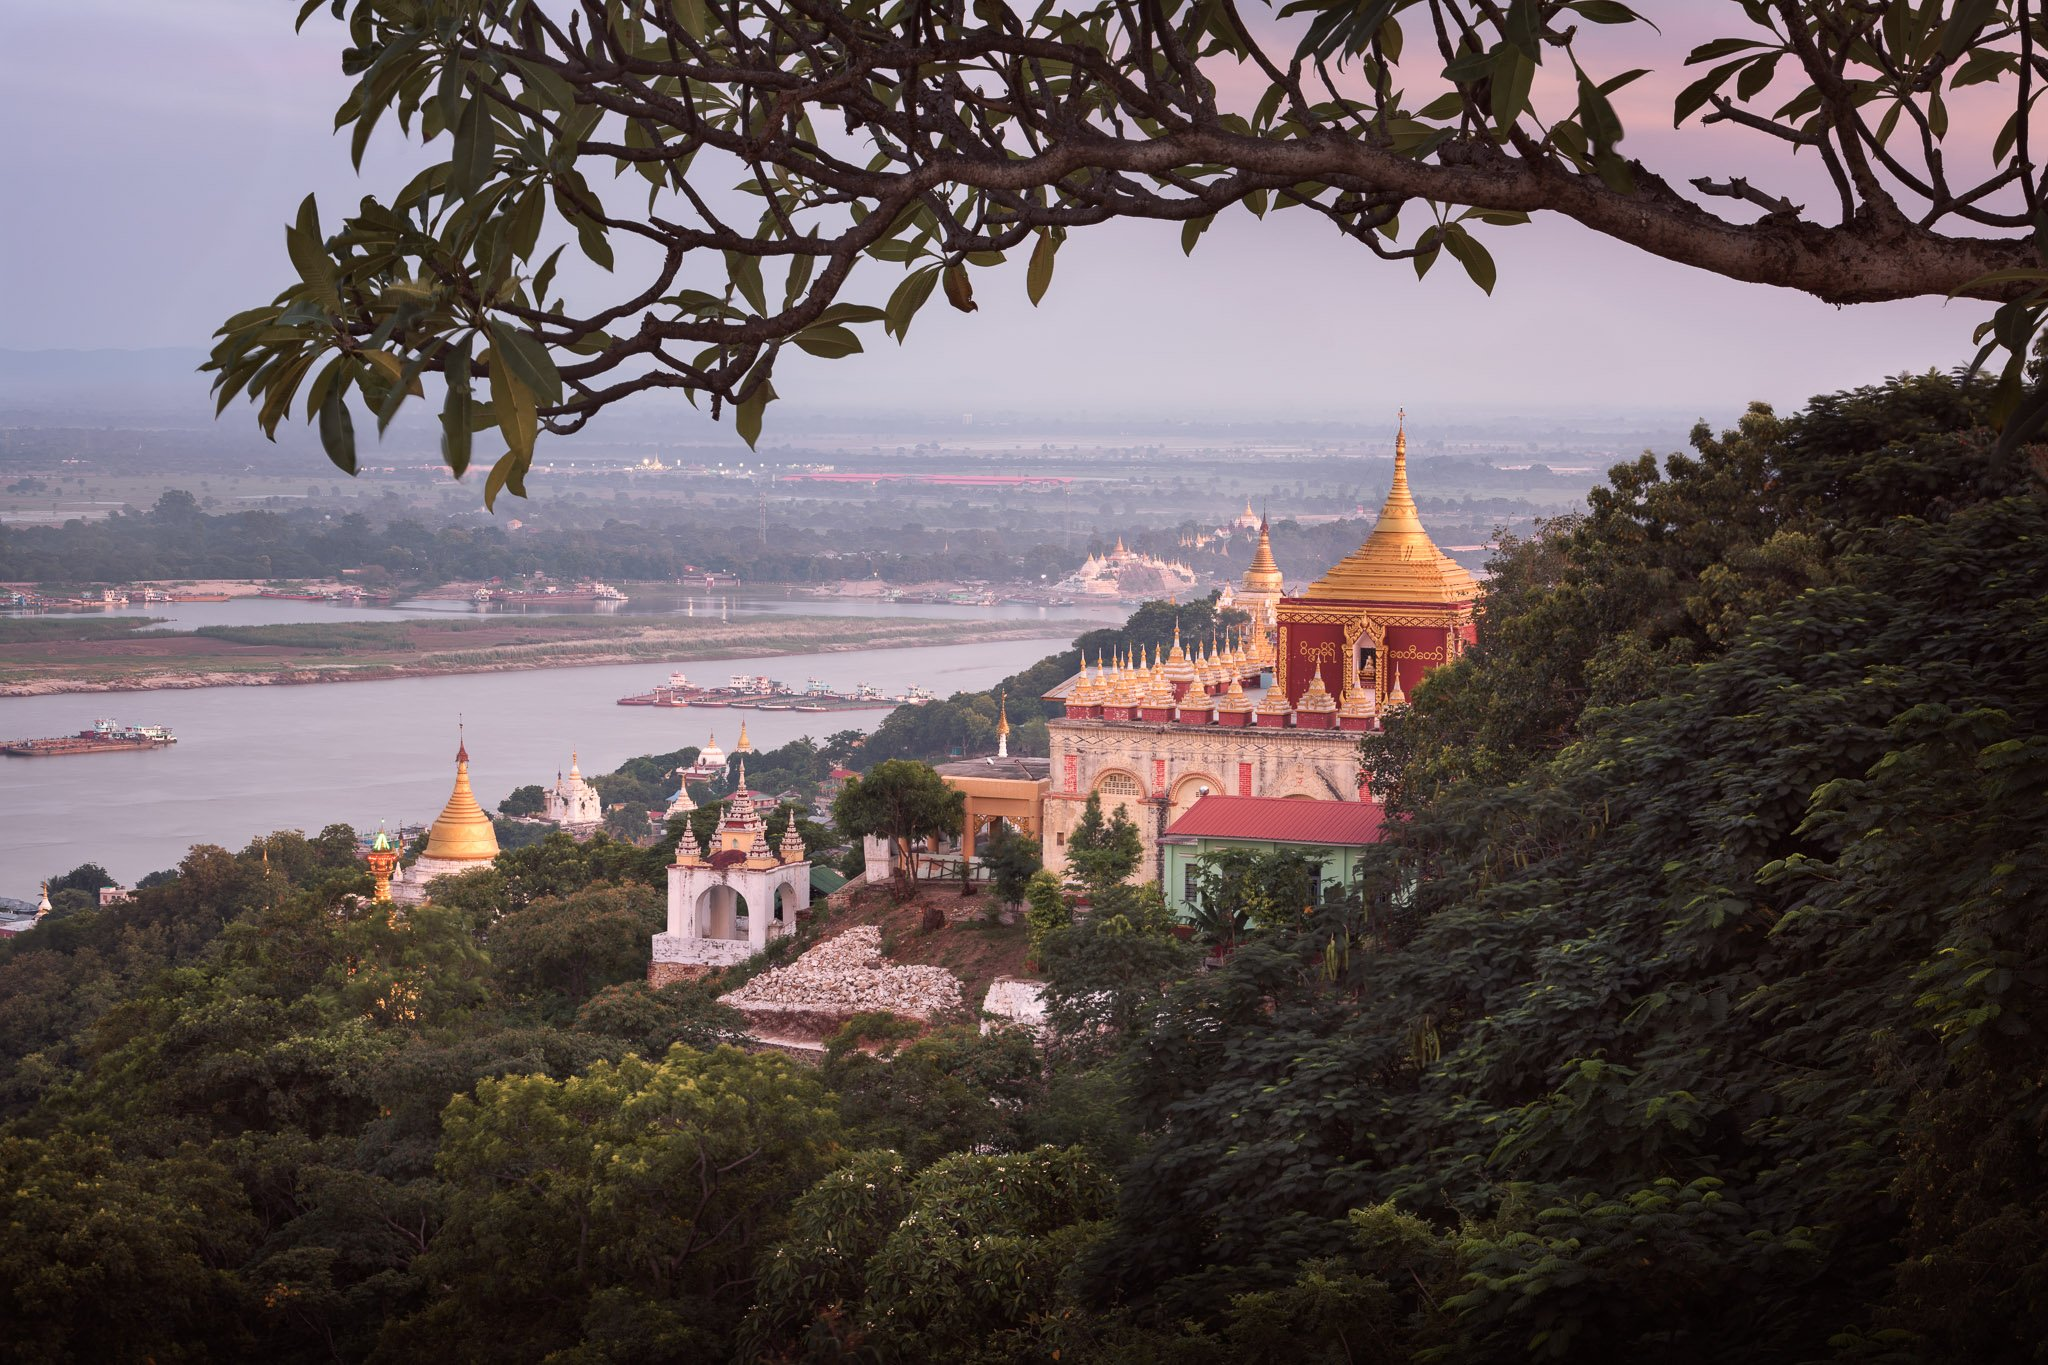 architecture, asia, asian, attraction, blue, buddha, buddhism, buddhist, building, burma, burmese, city, complex, culture, evening, exterior, golden, heritage, hill, historic, history, la, landmark, mandalay, monument, myanmar, outdoor, pagoda, pyae, red,, Omelyanchuk Andrey